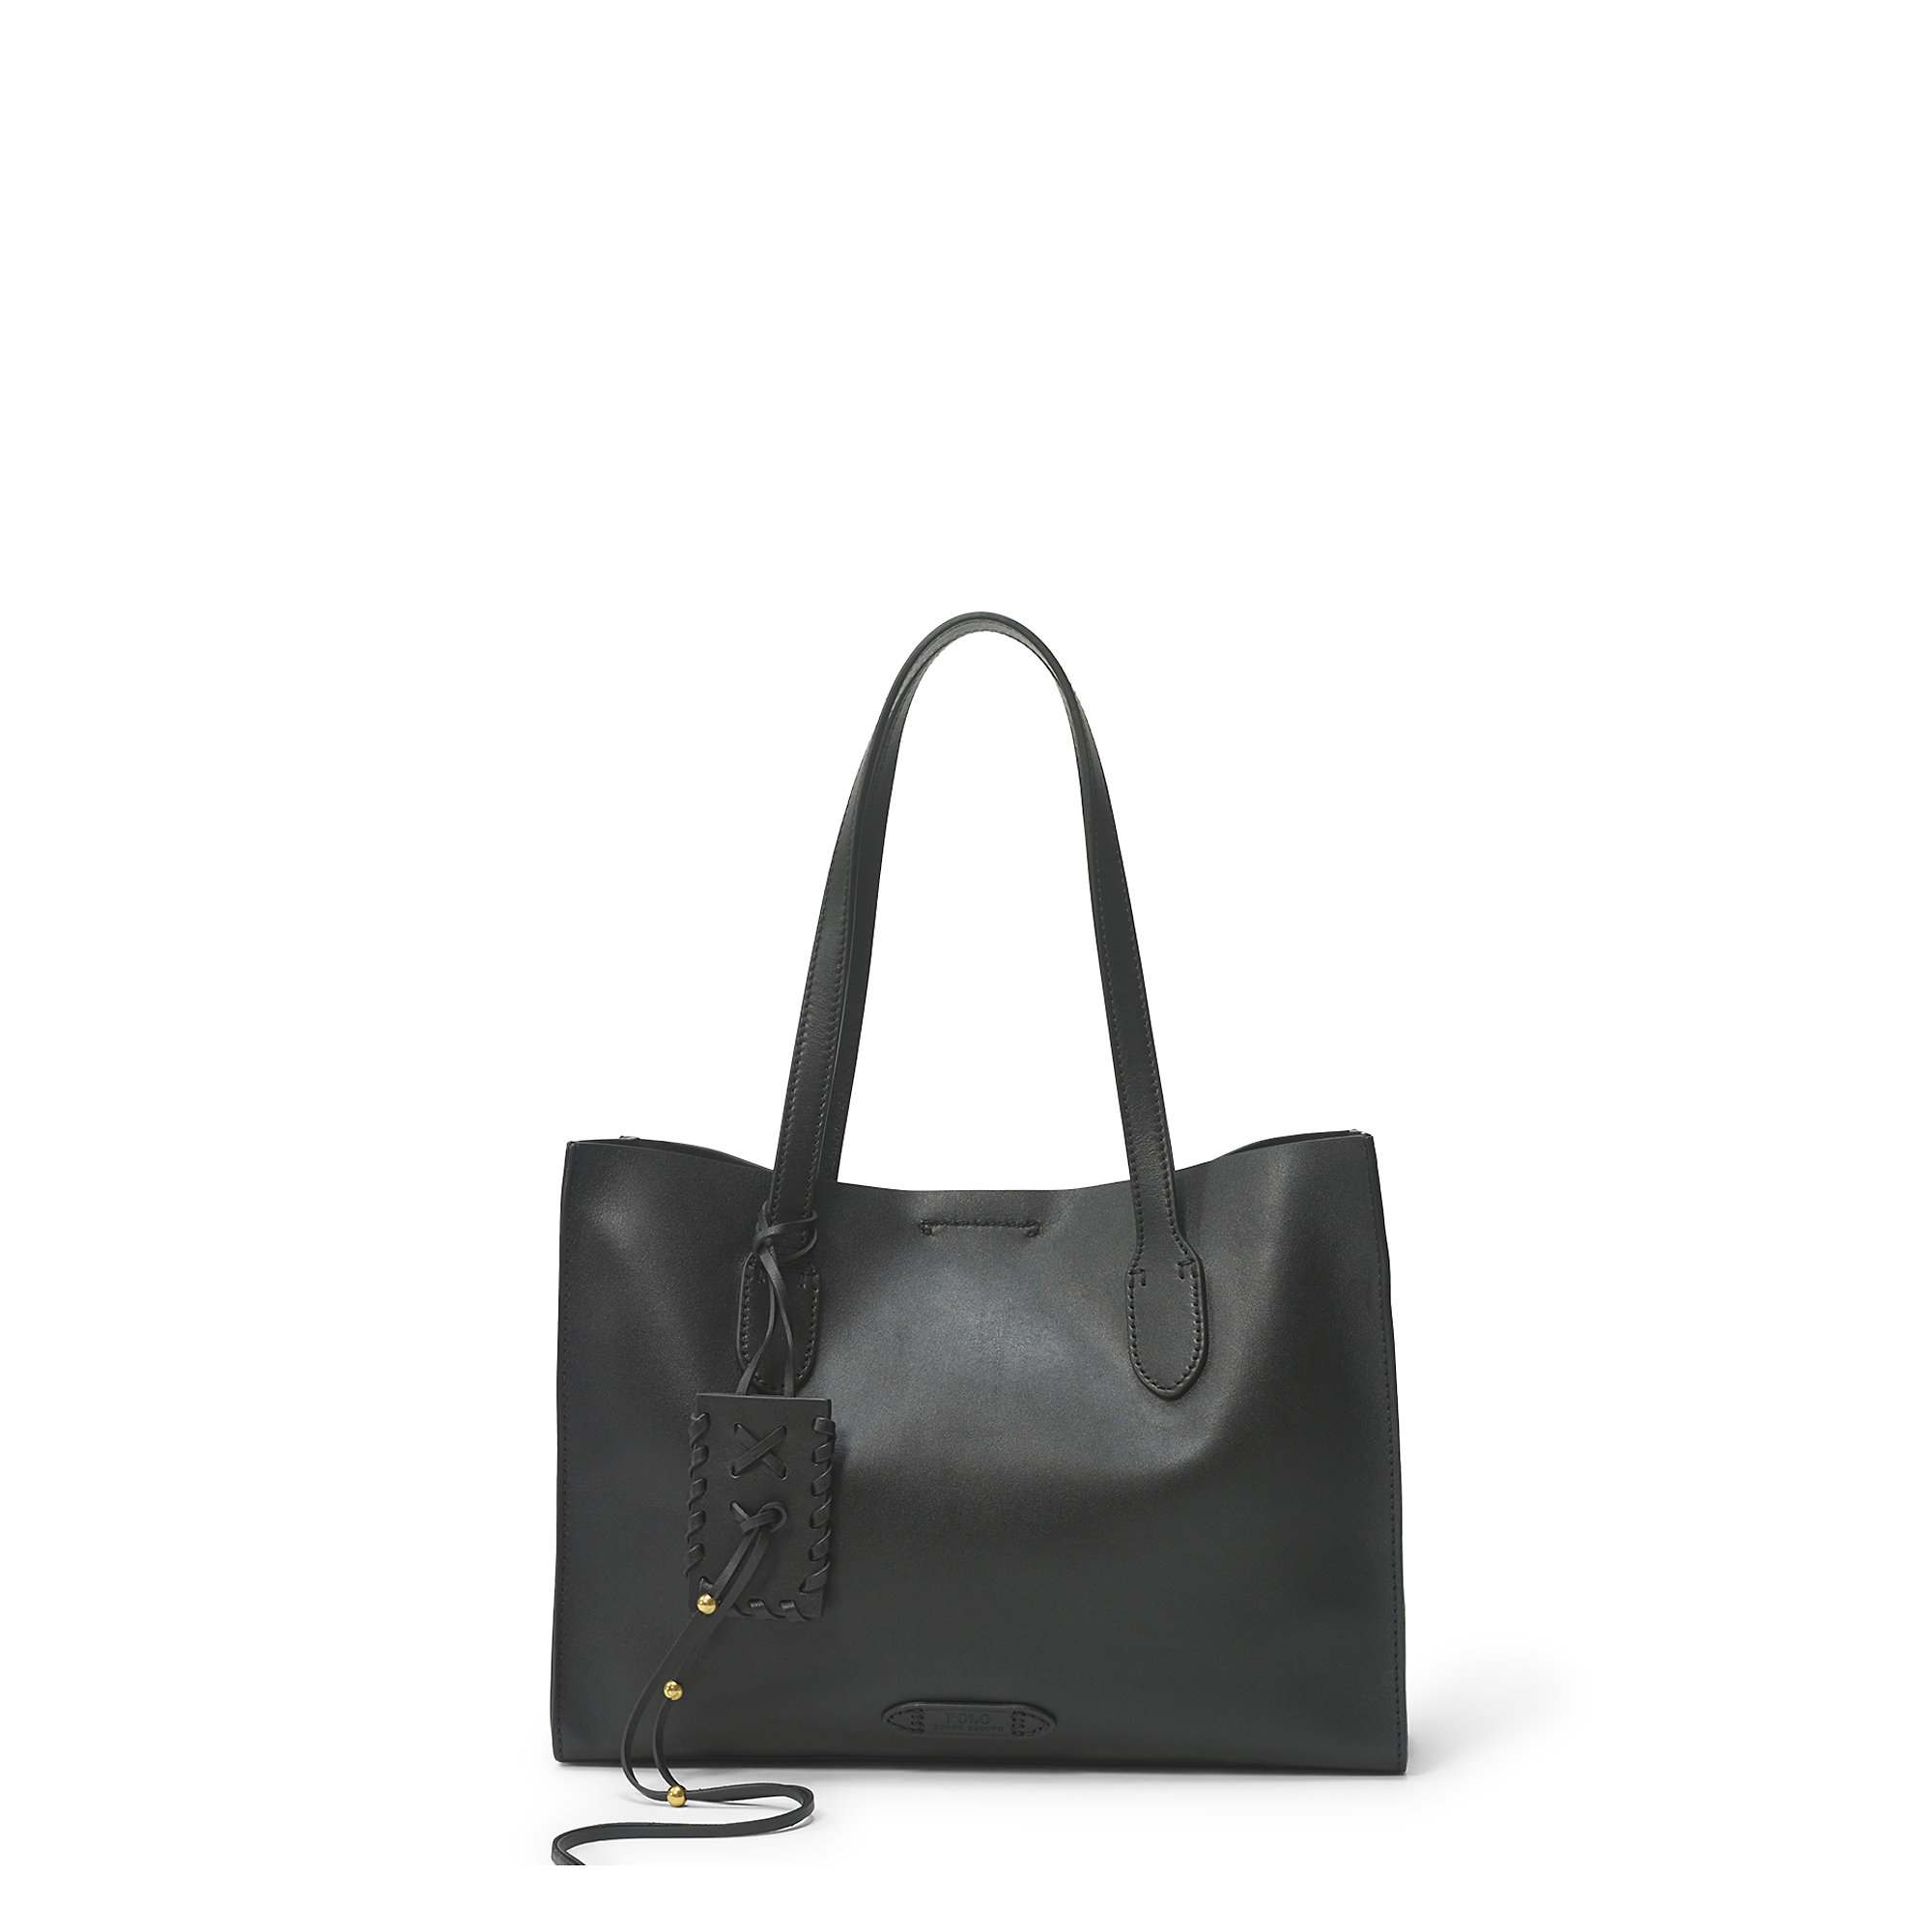 c3bfefd1d3a ... uk lyst polo ralph lauren leather tote in black a82f3 1d4b2